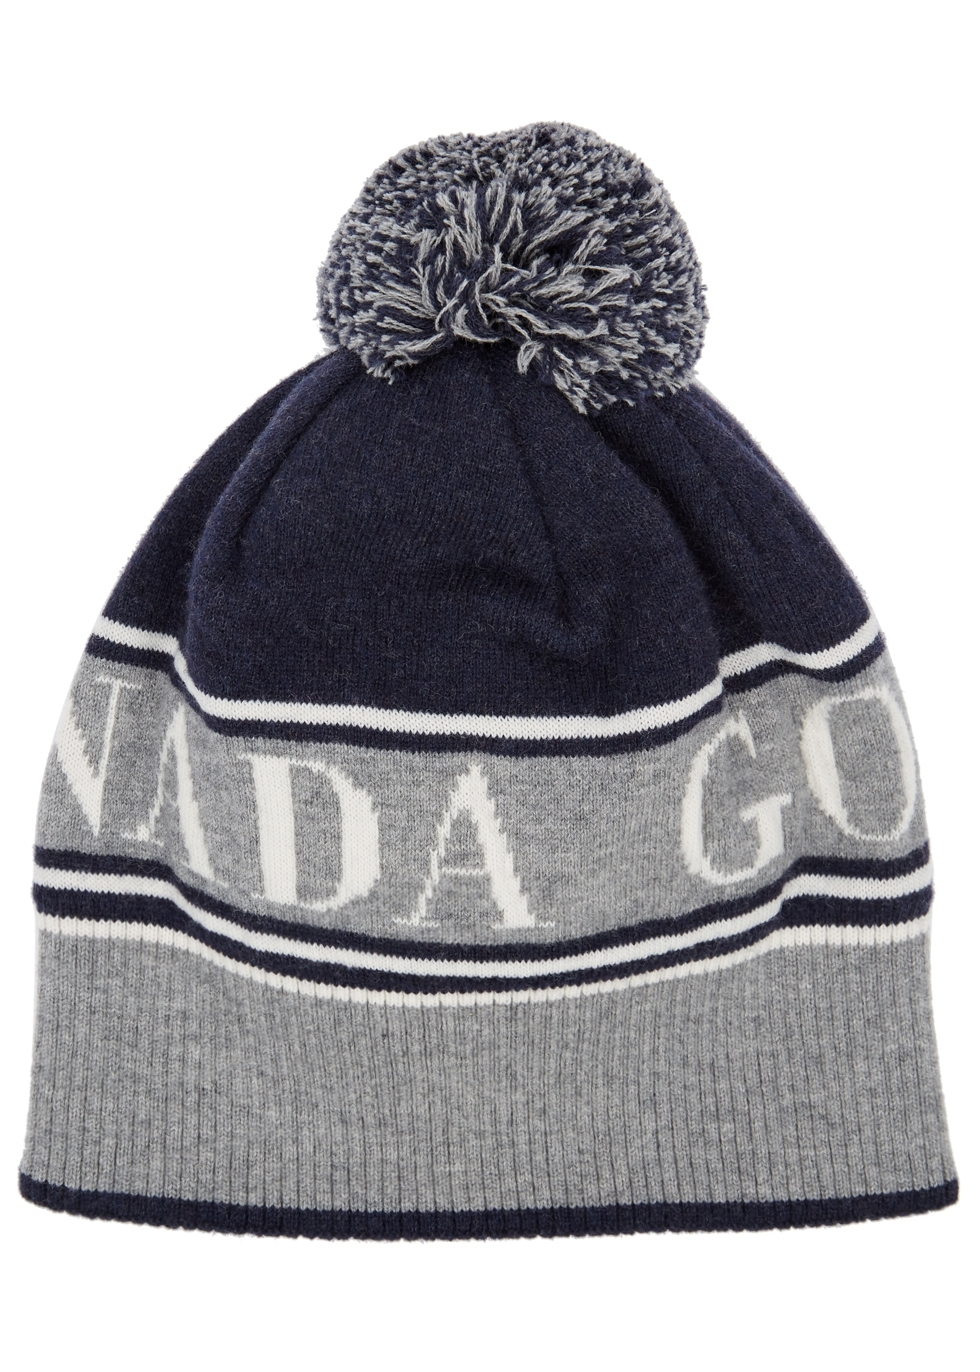 4d844808408 Designer Beanies - Women s Luxury Hats - Harvey Nichols